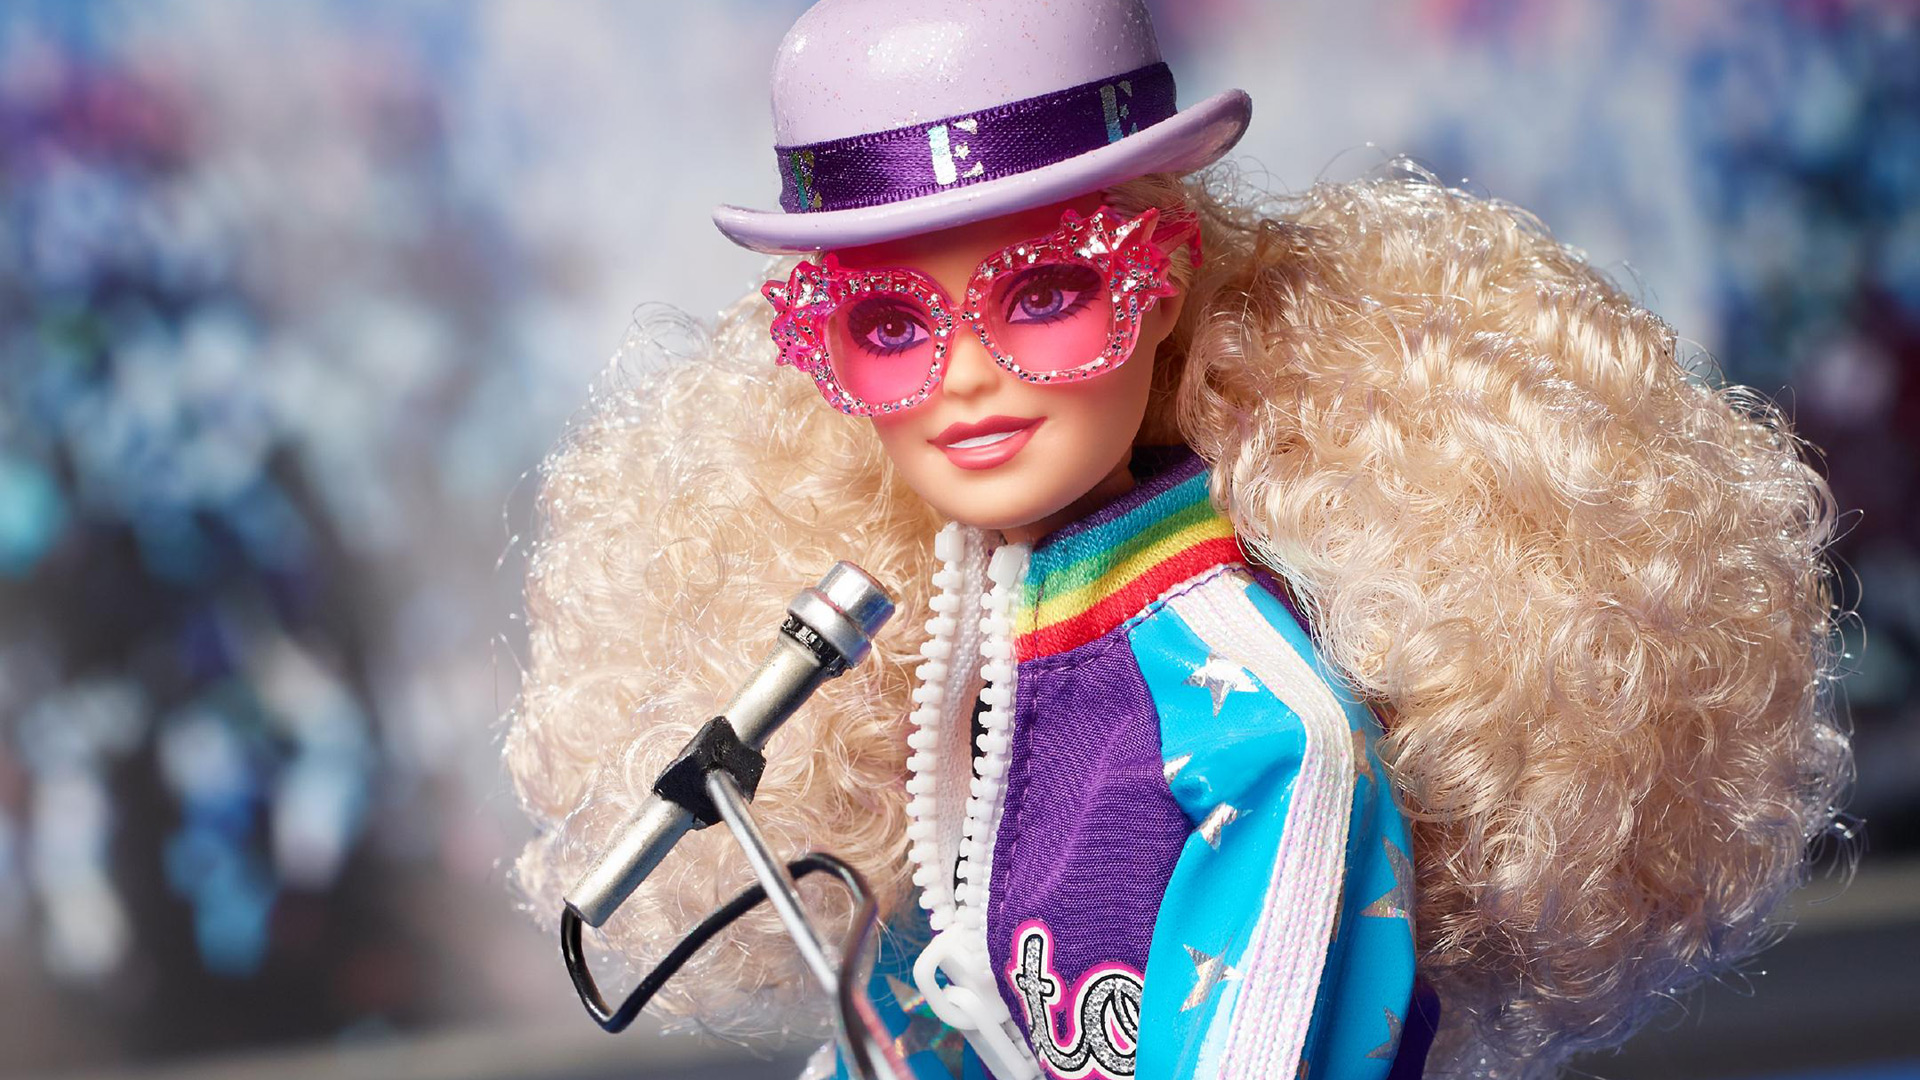 The Elton John Barbie ( Barbie/Mattel/Twitter)